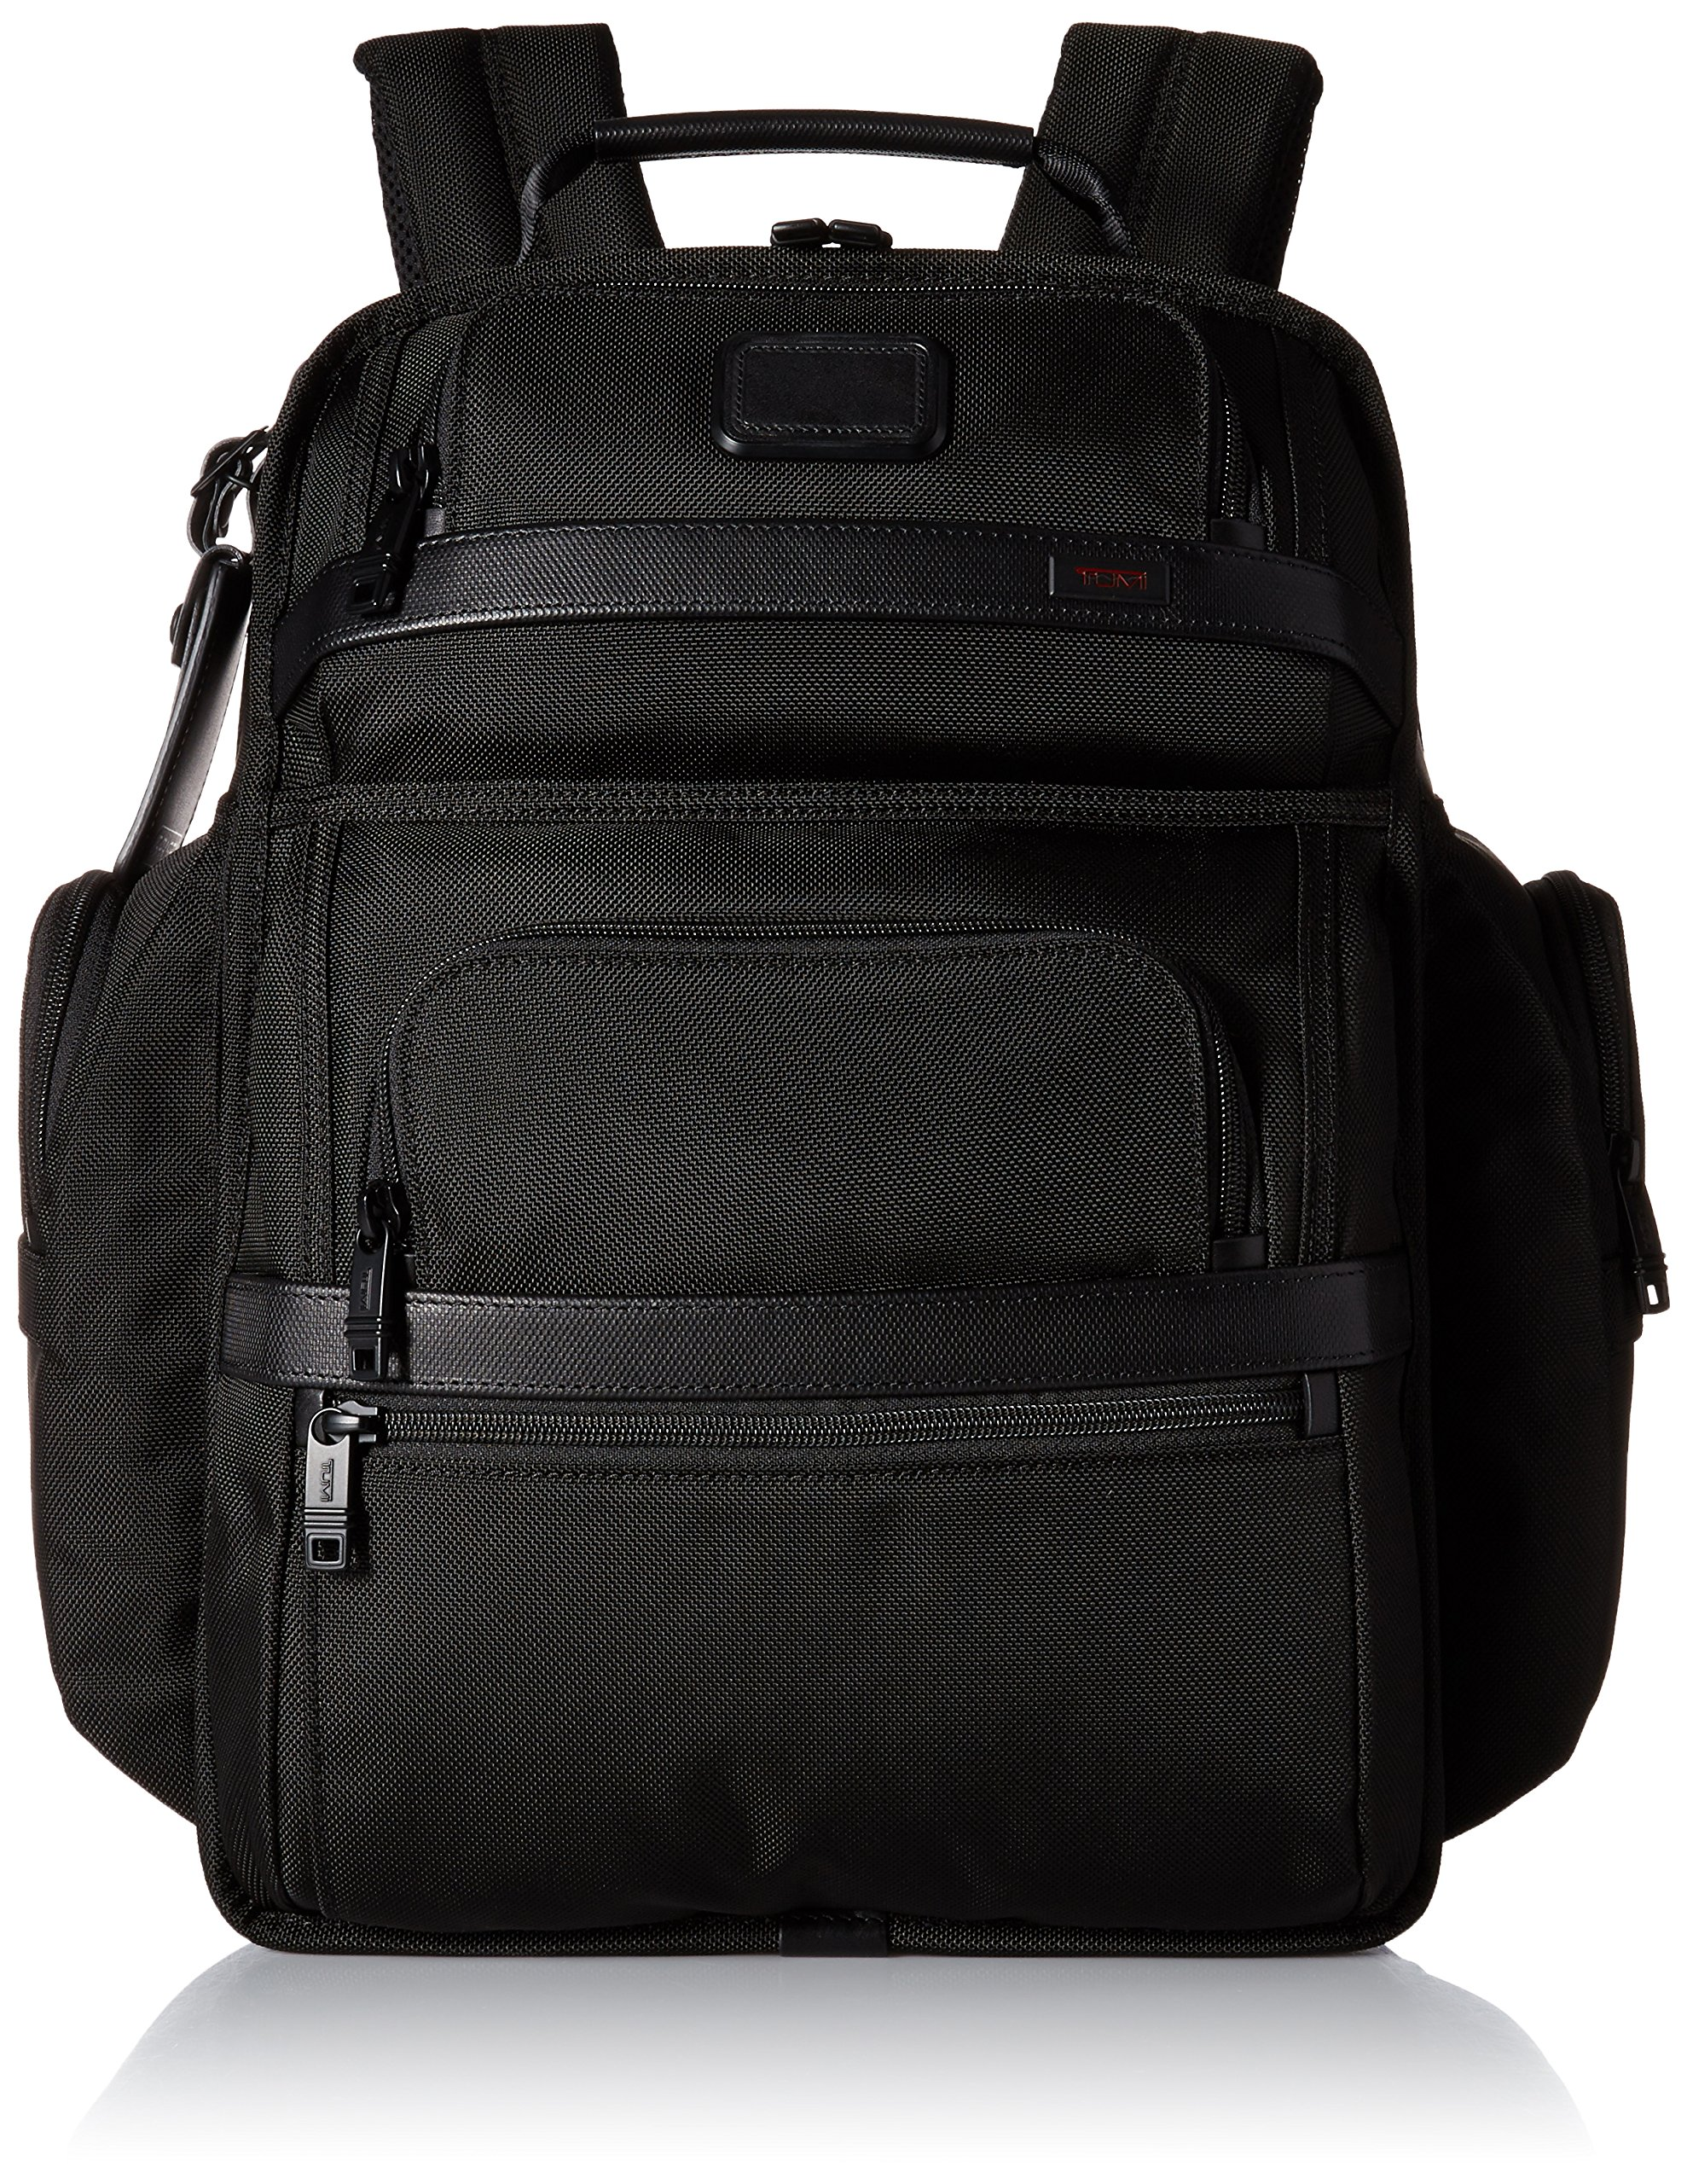 Tumi Alpha 2 T-Pass Business Class Brief Pack, Black, One Size